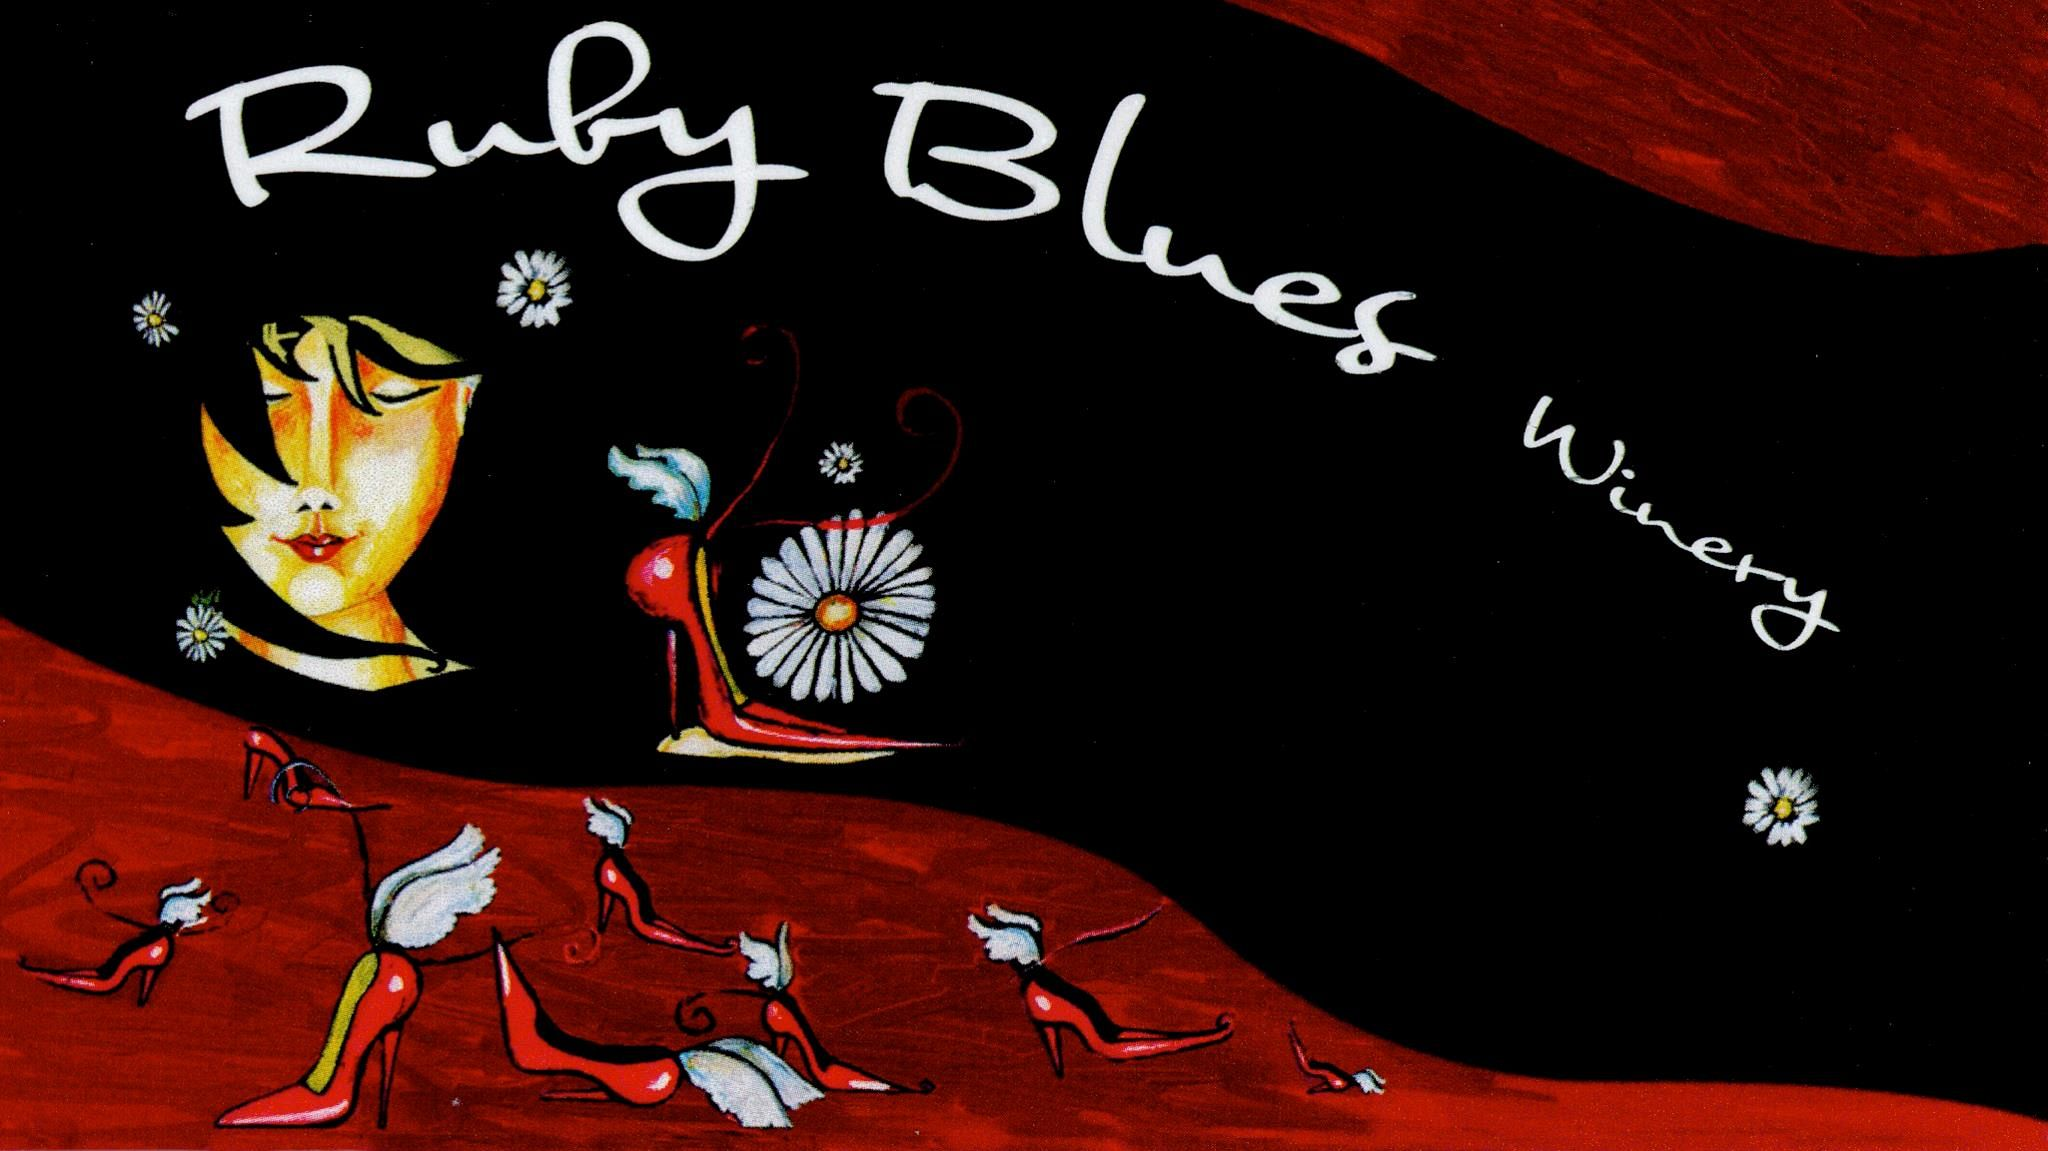 Ruby Blues Winery